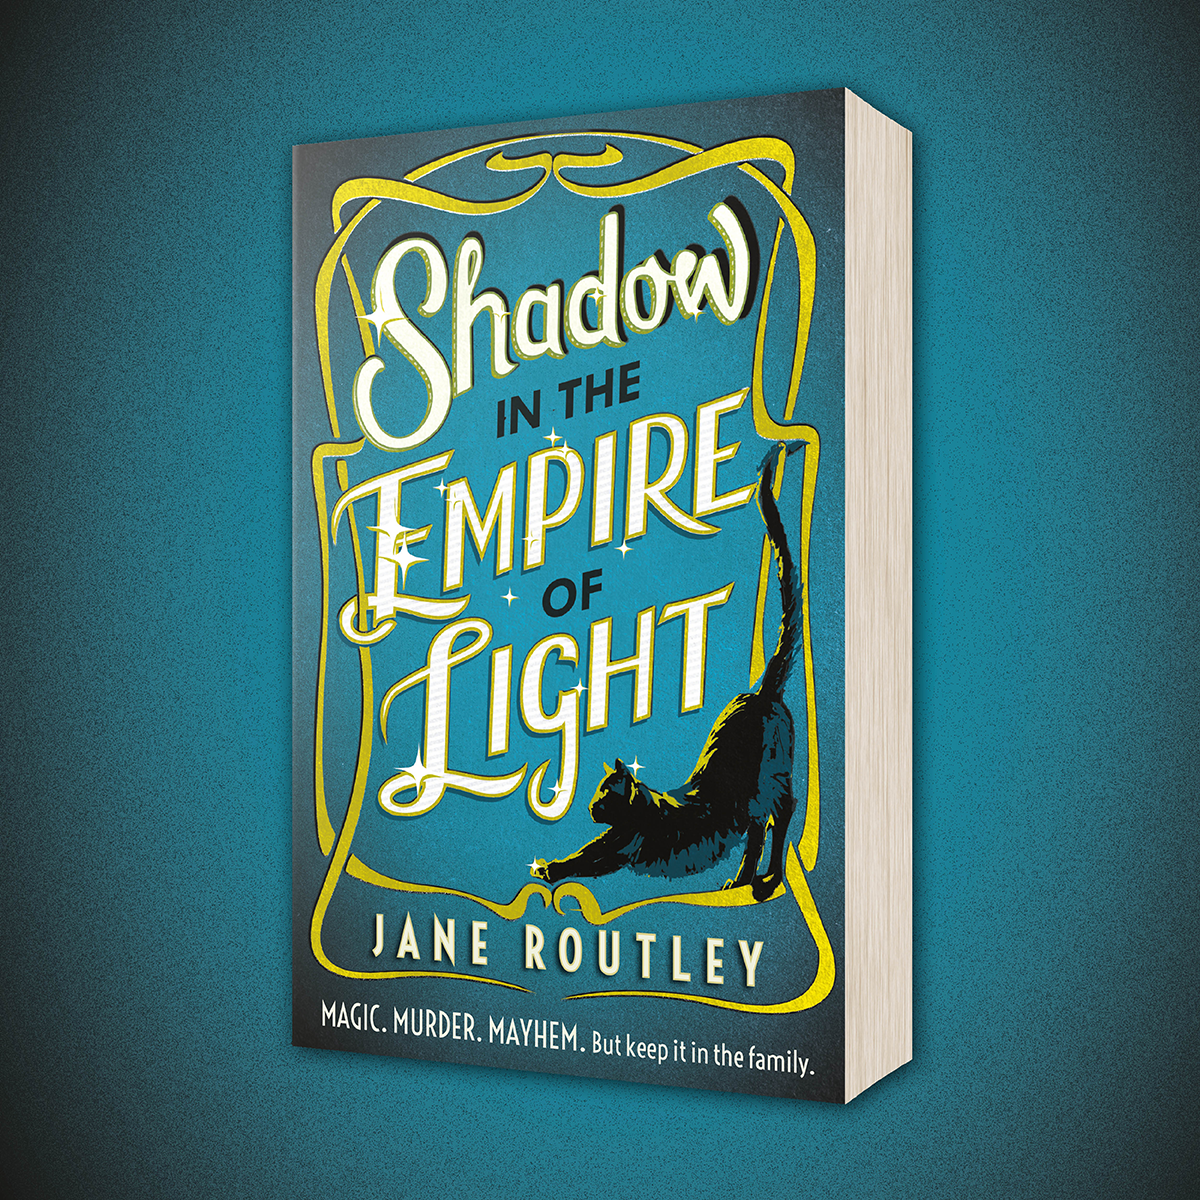 OUT NOW: Shadow in the Empire of Light by Jane Routley